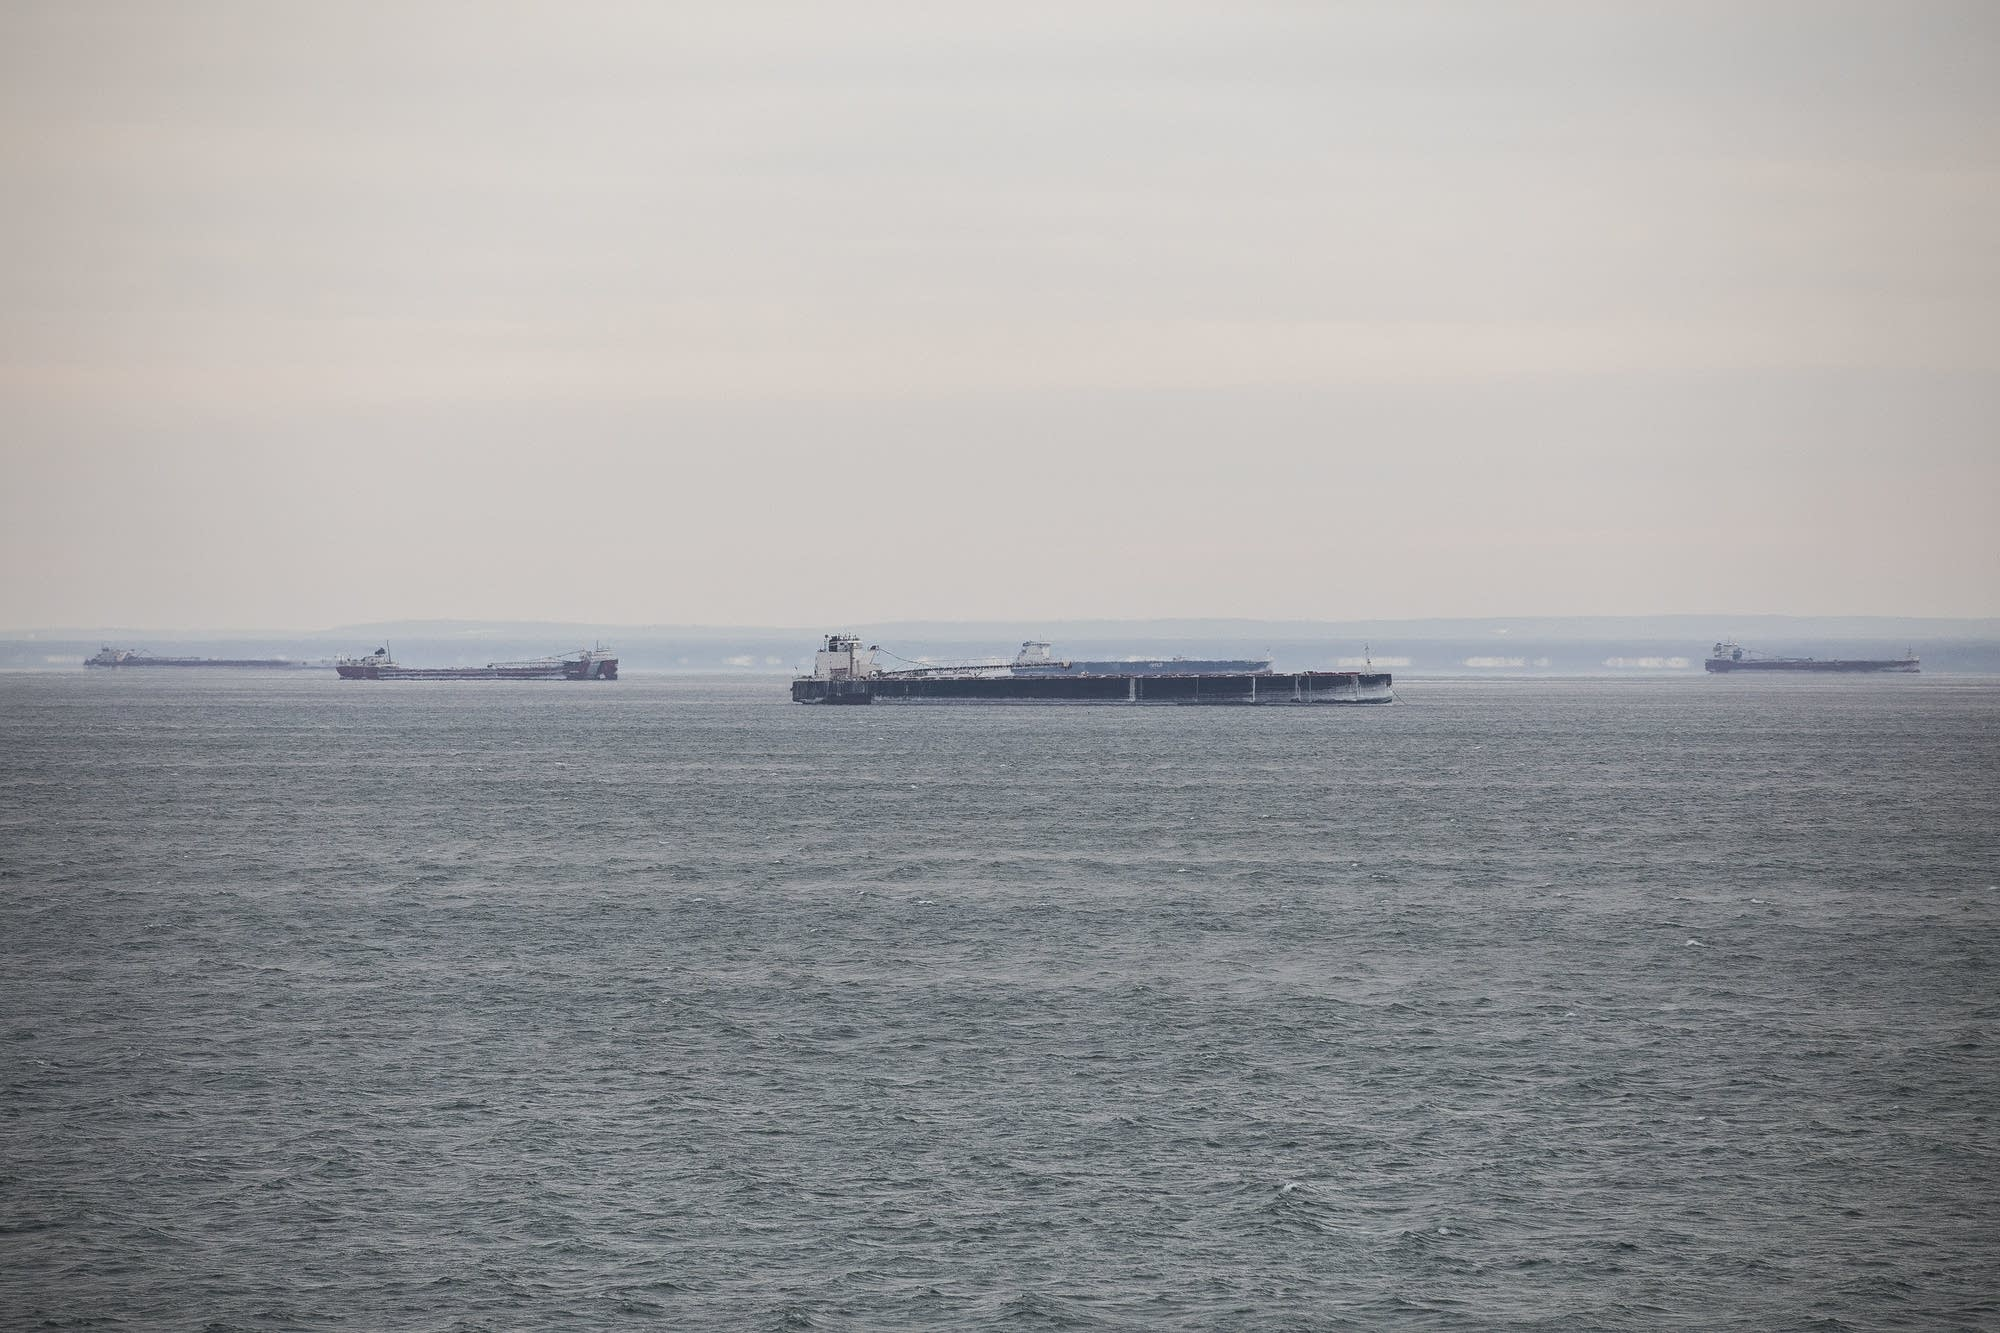 The ships are anchored offshore from Duluth for a variety of reasons.